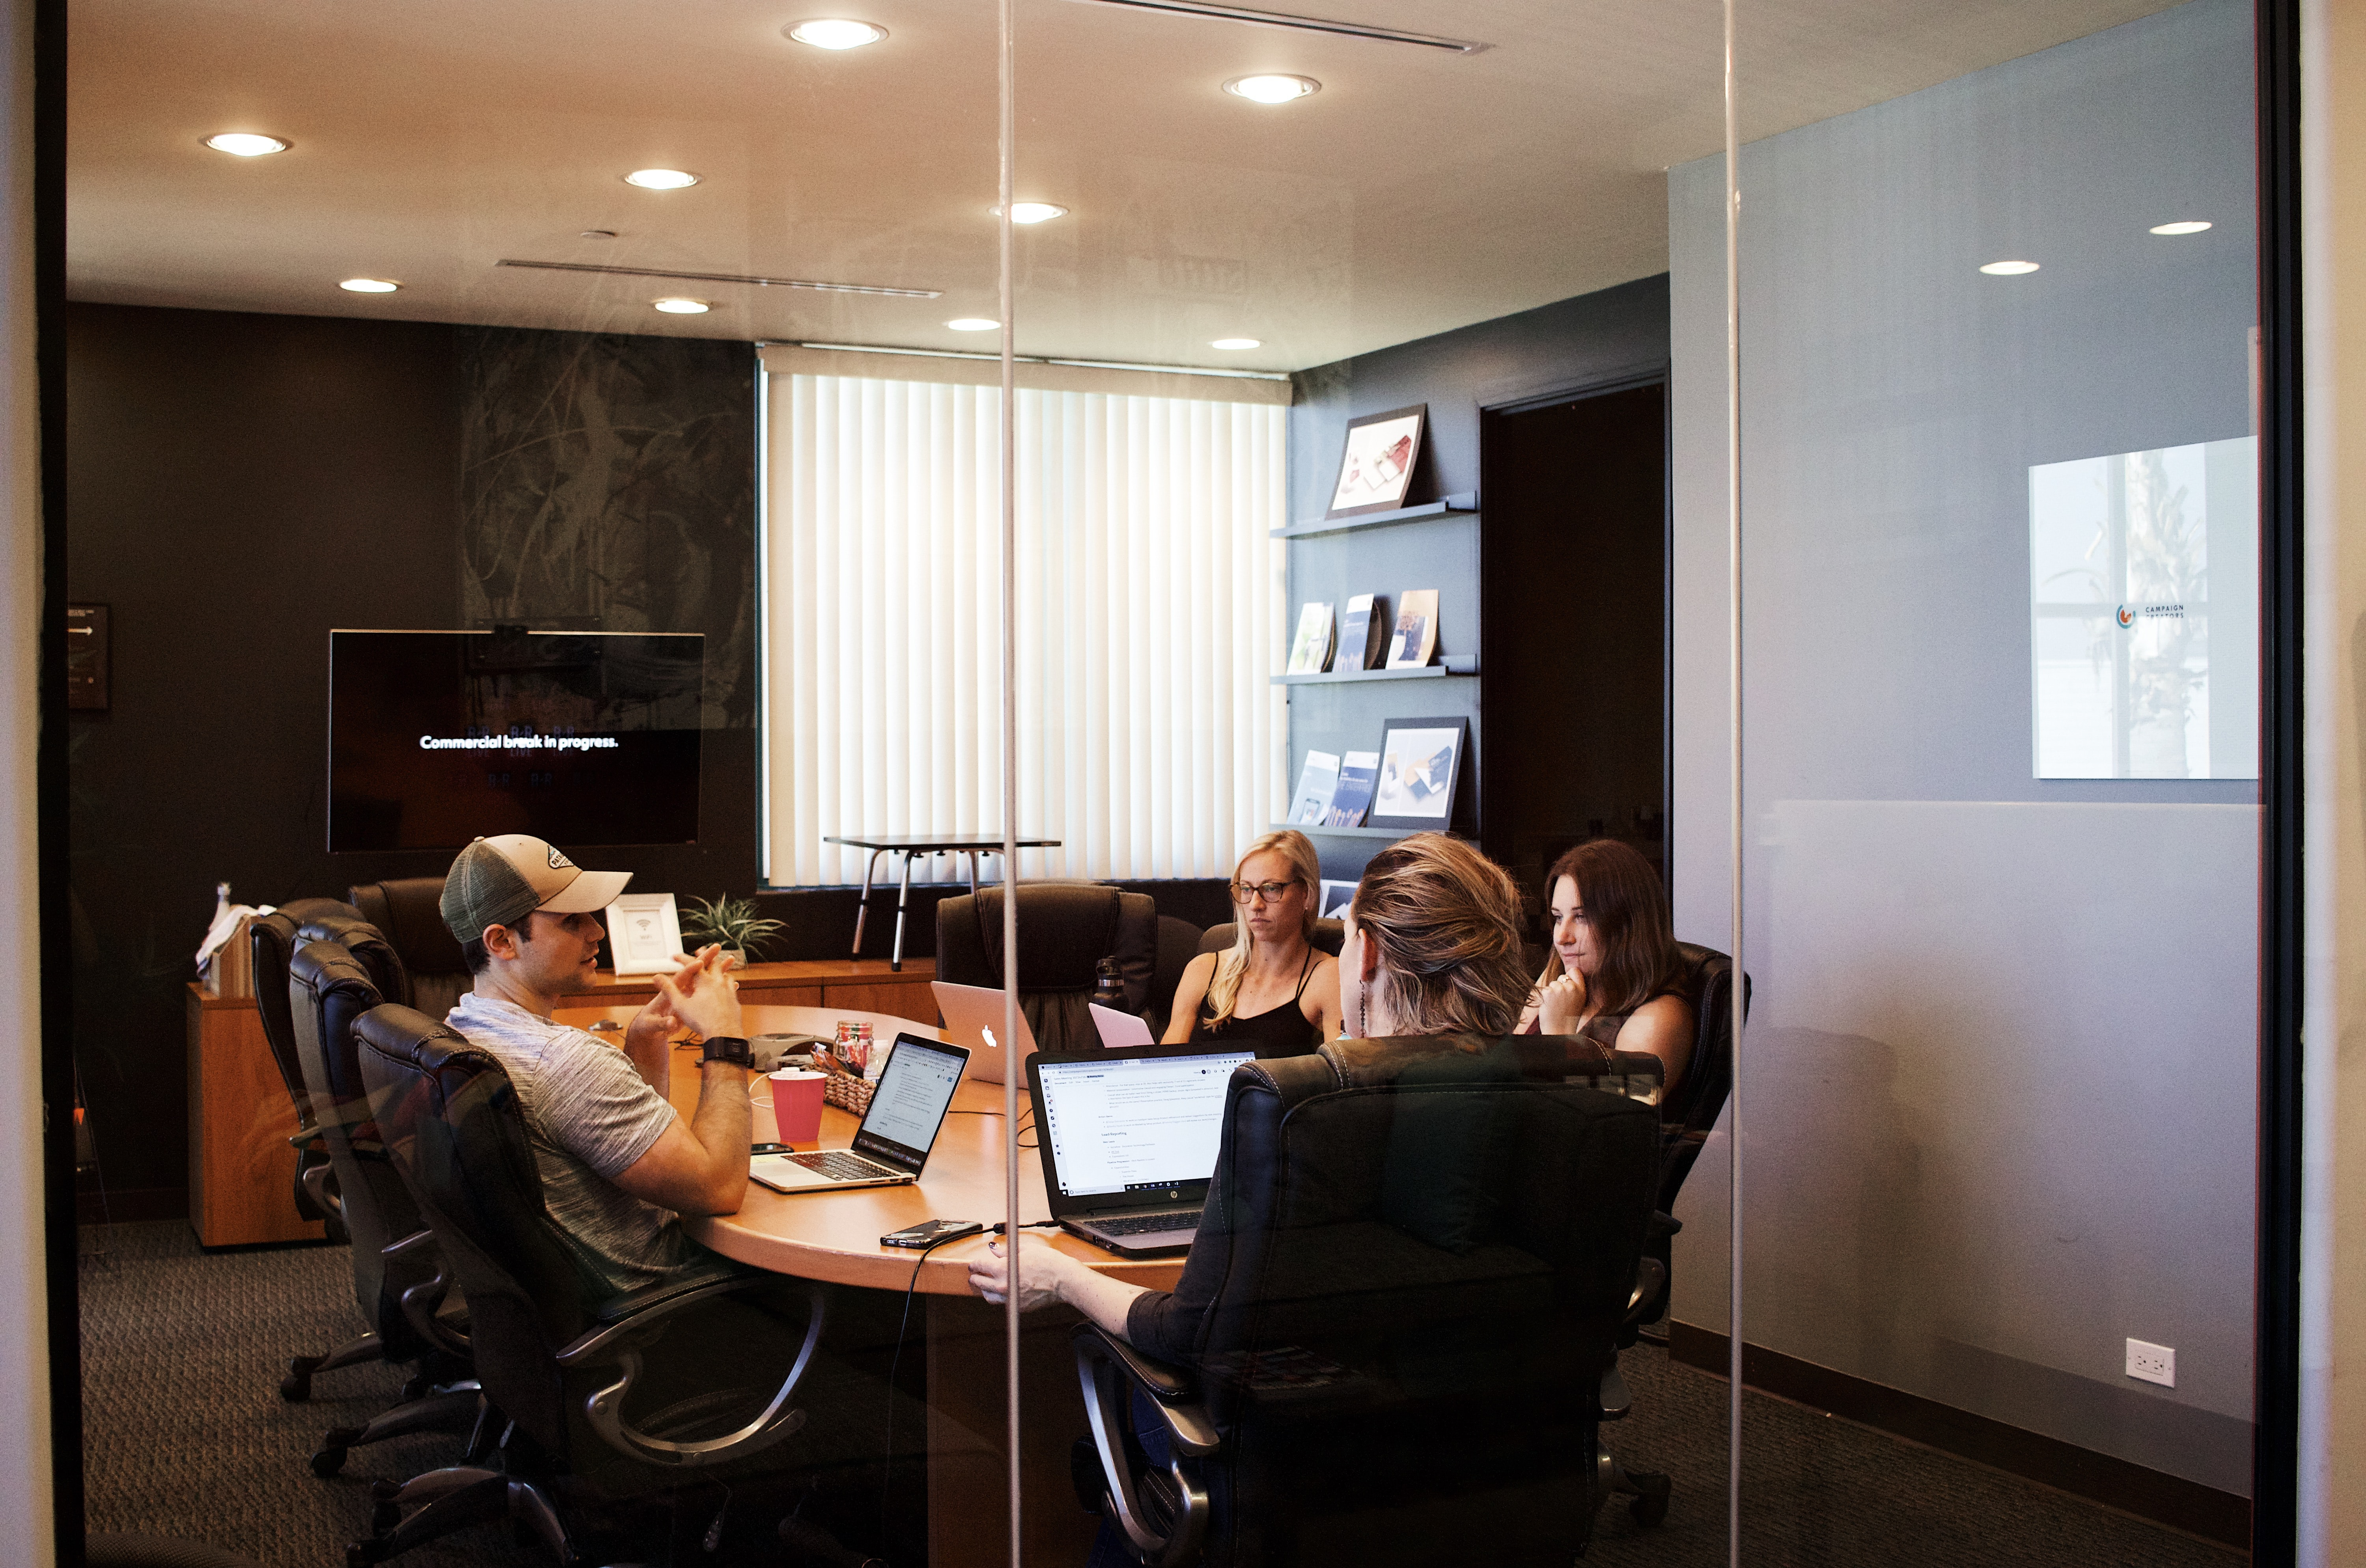 Team of Business-people in an office